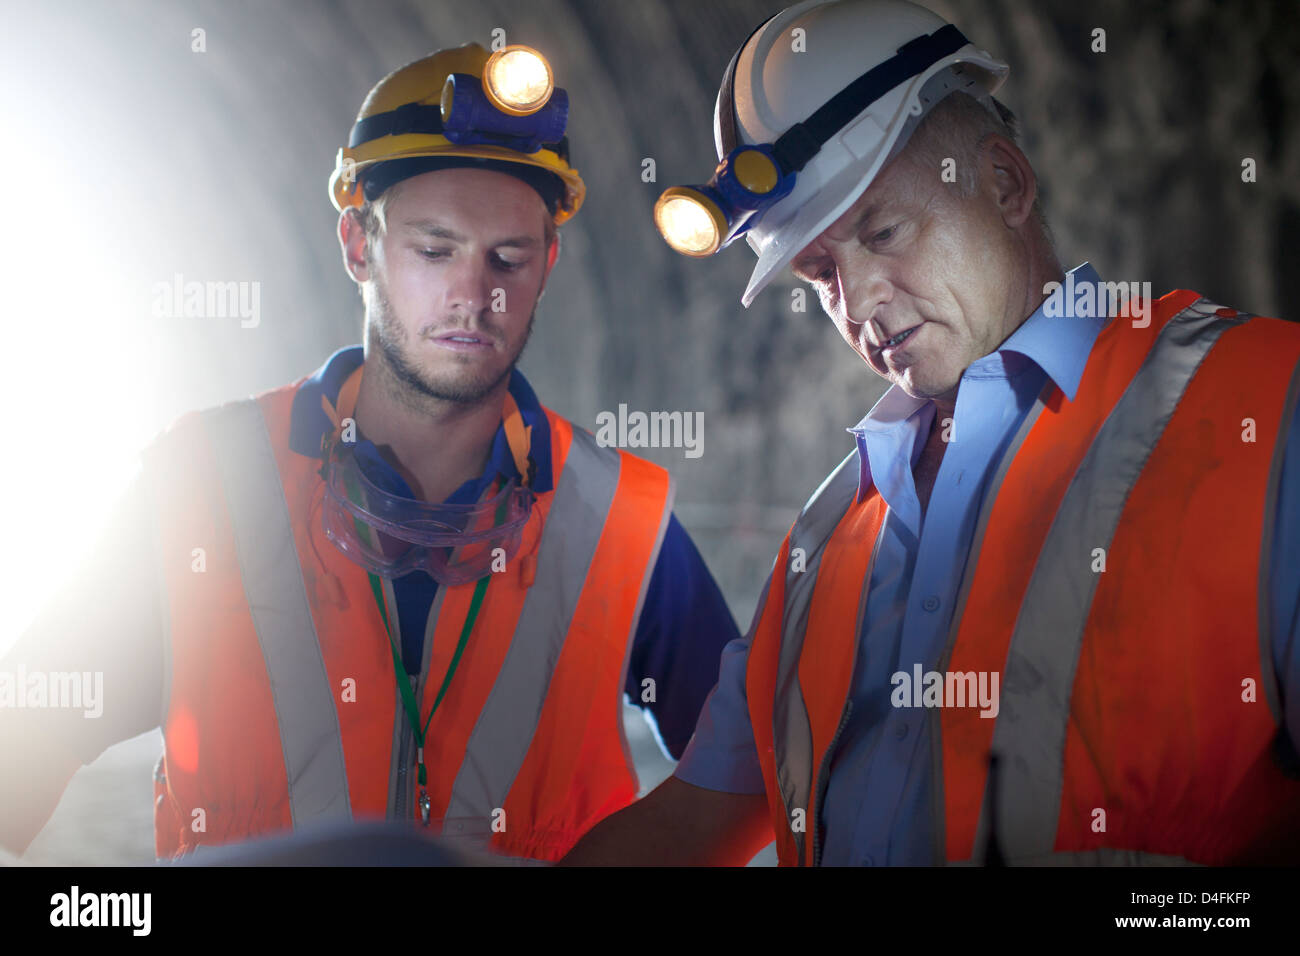 Workers talking in tunnel - Stock Image